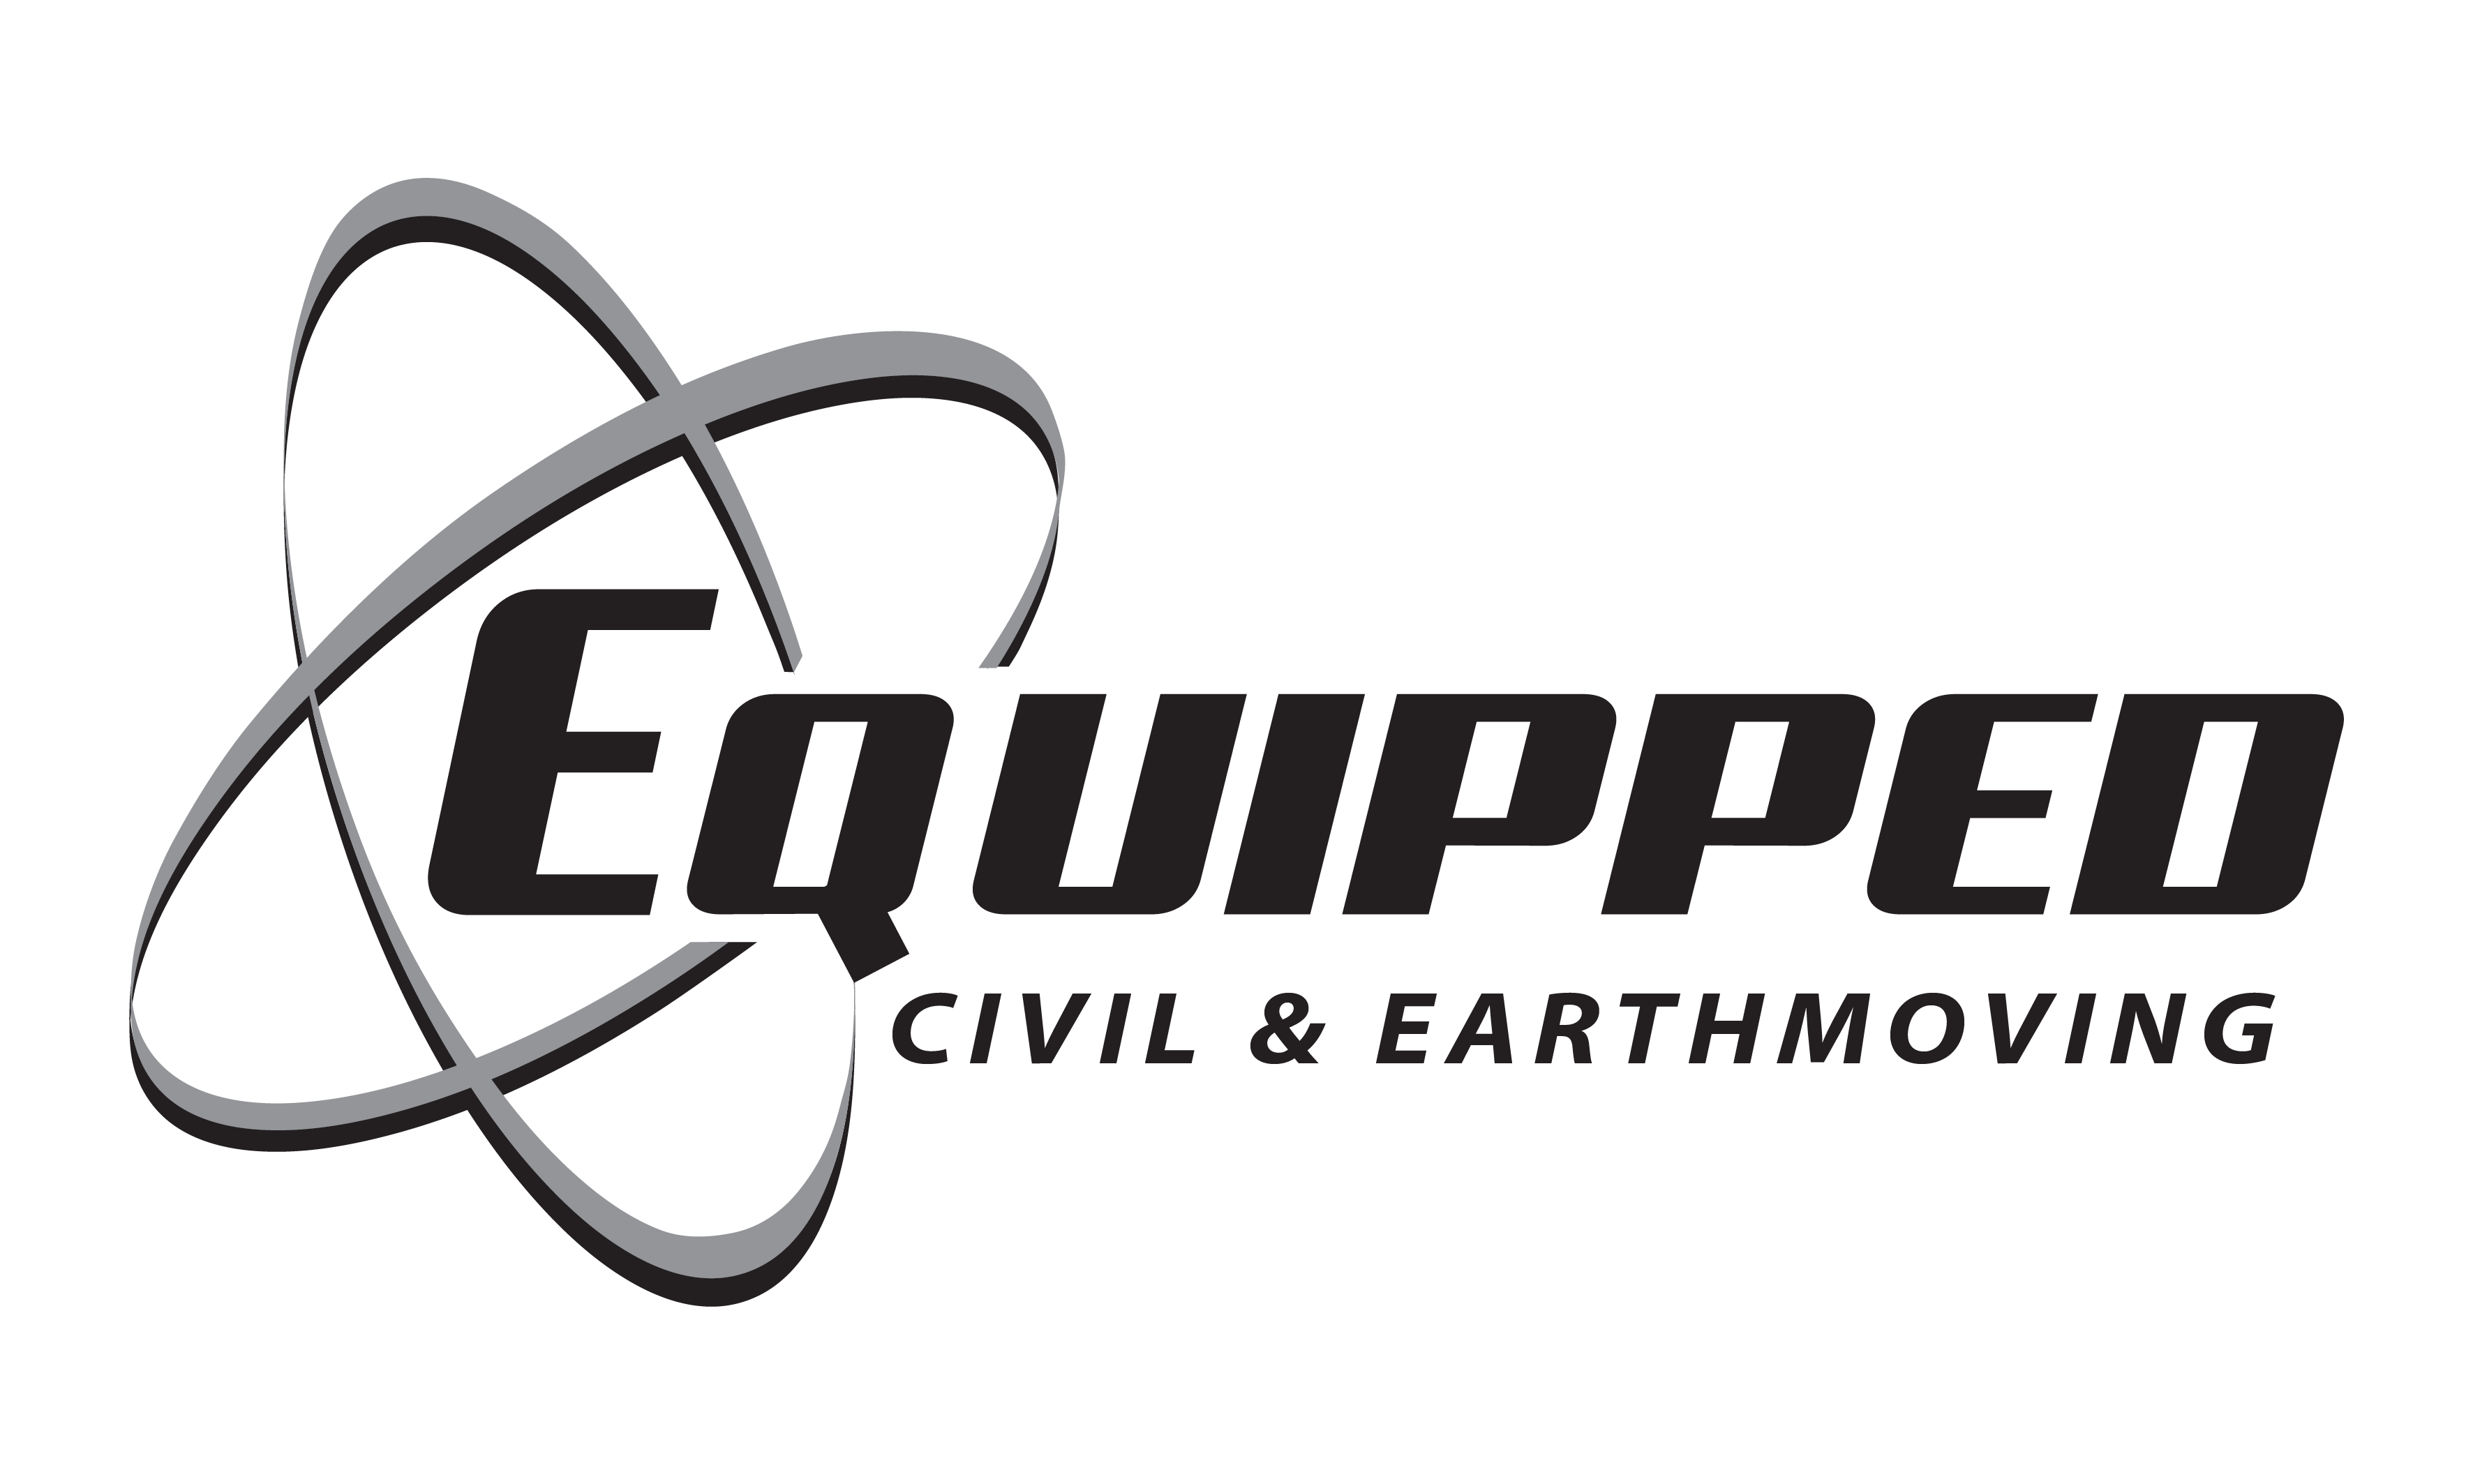 Equipped-Civil-and-Earthmoving-Logo